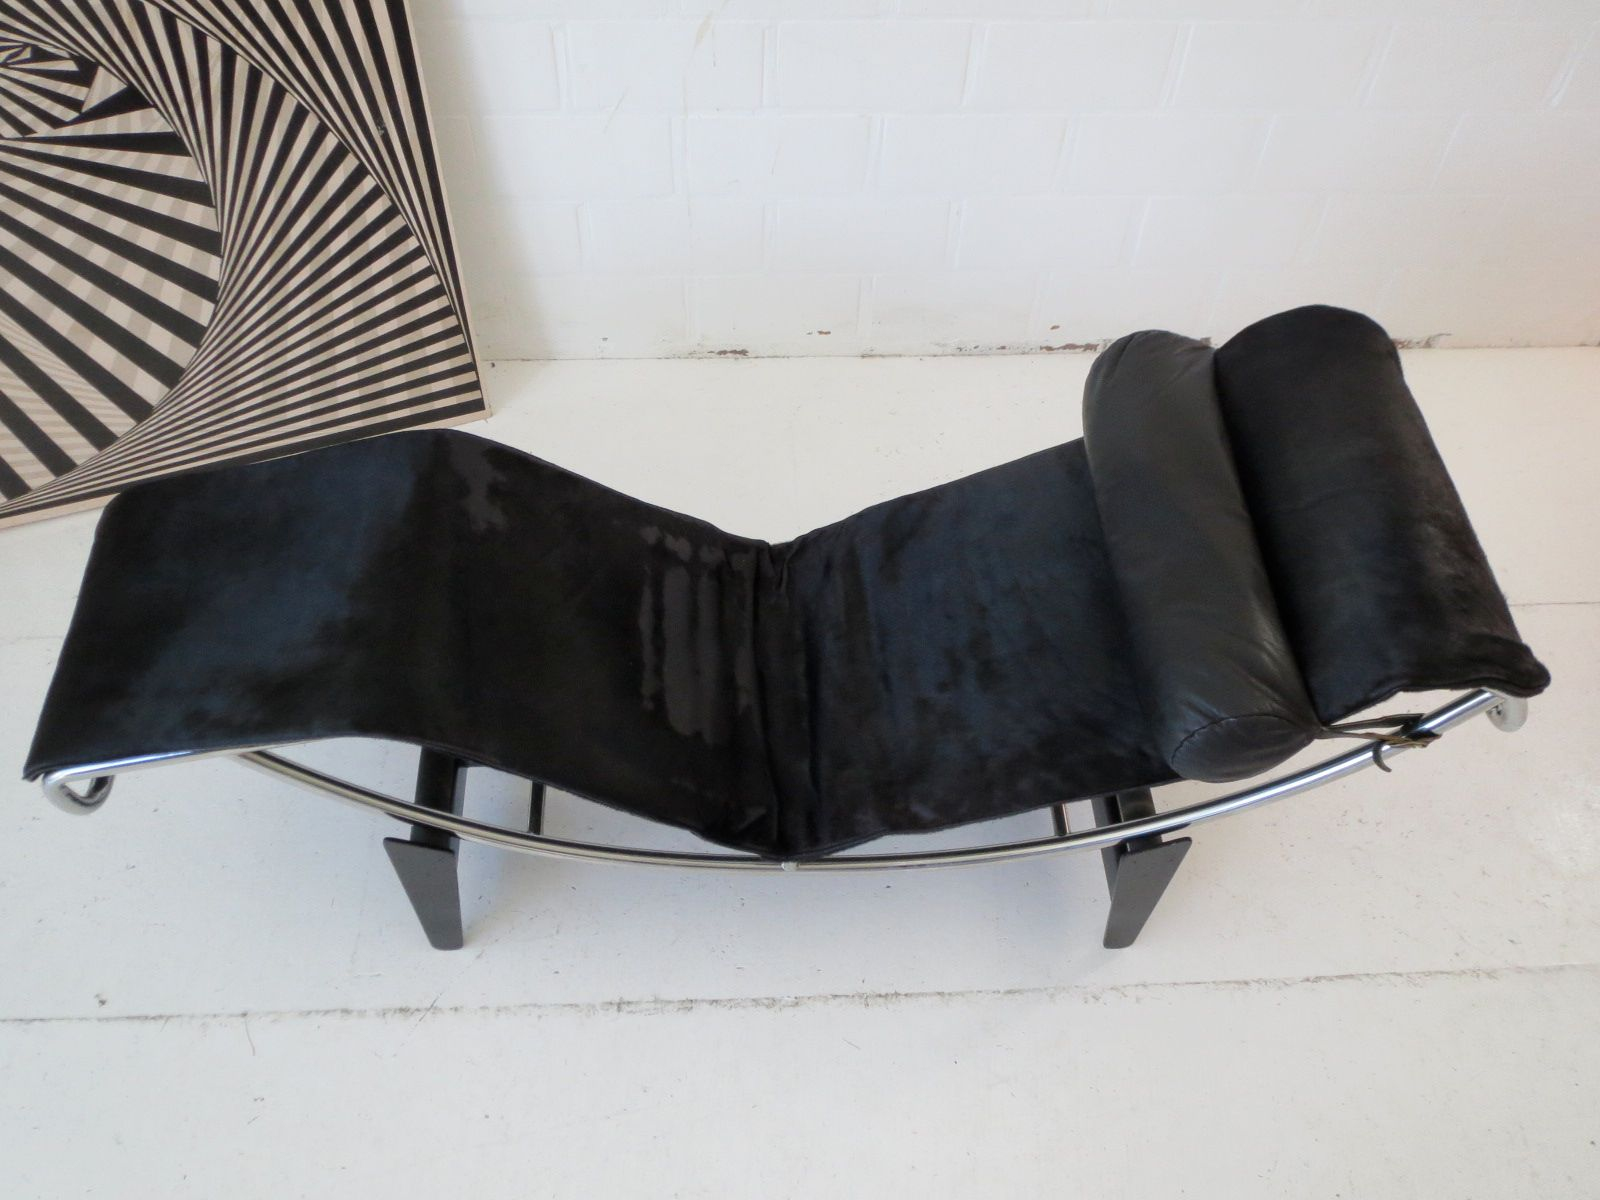 Early under 750 numbered lc4 chaise longue by le for Chaise longue le corbusier wikipedia